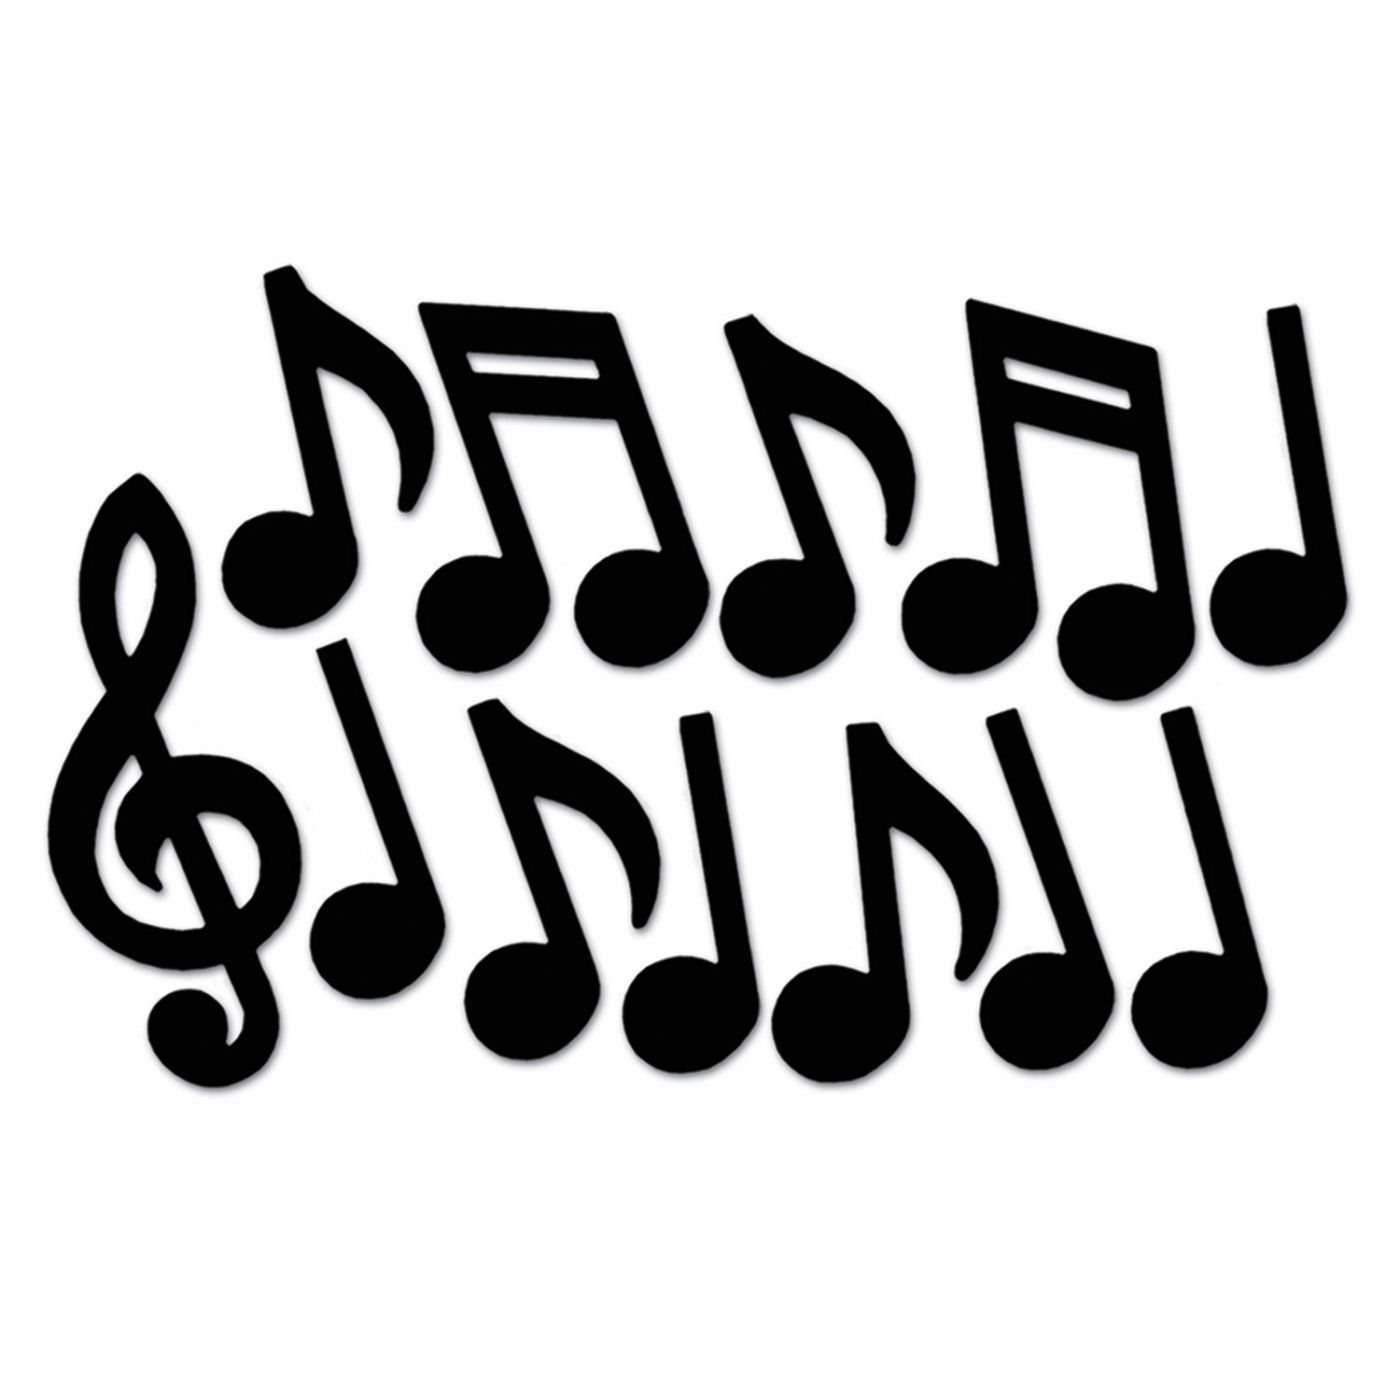 Musical Notes Silhouettes image